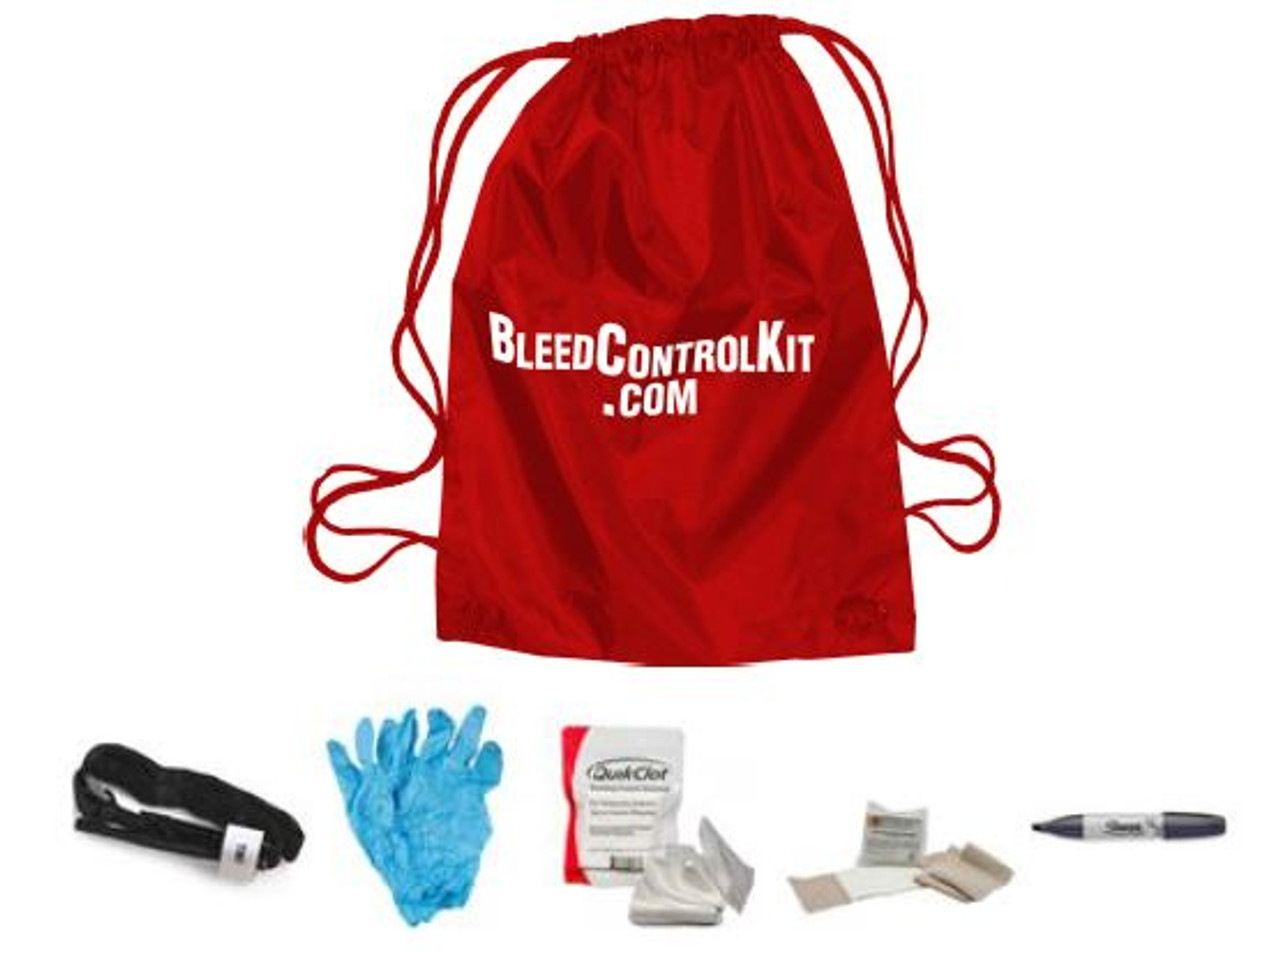 Mass Casualty Bag / Wall Wall Cabinet Combo (8 IND. Kits)